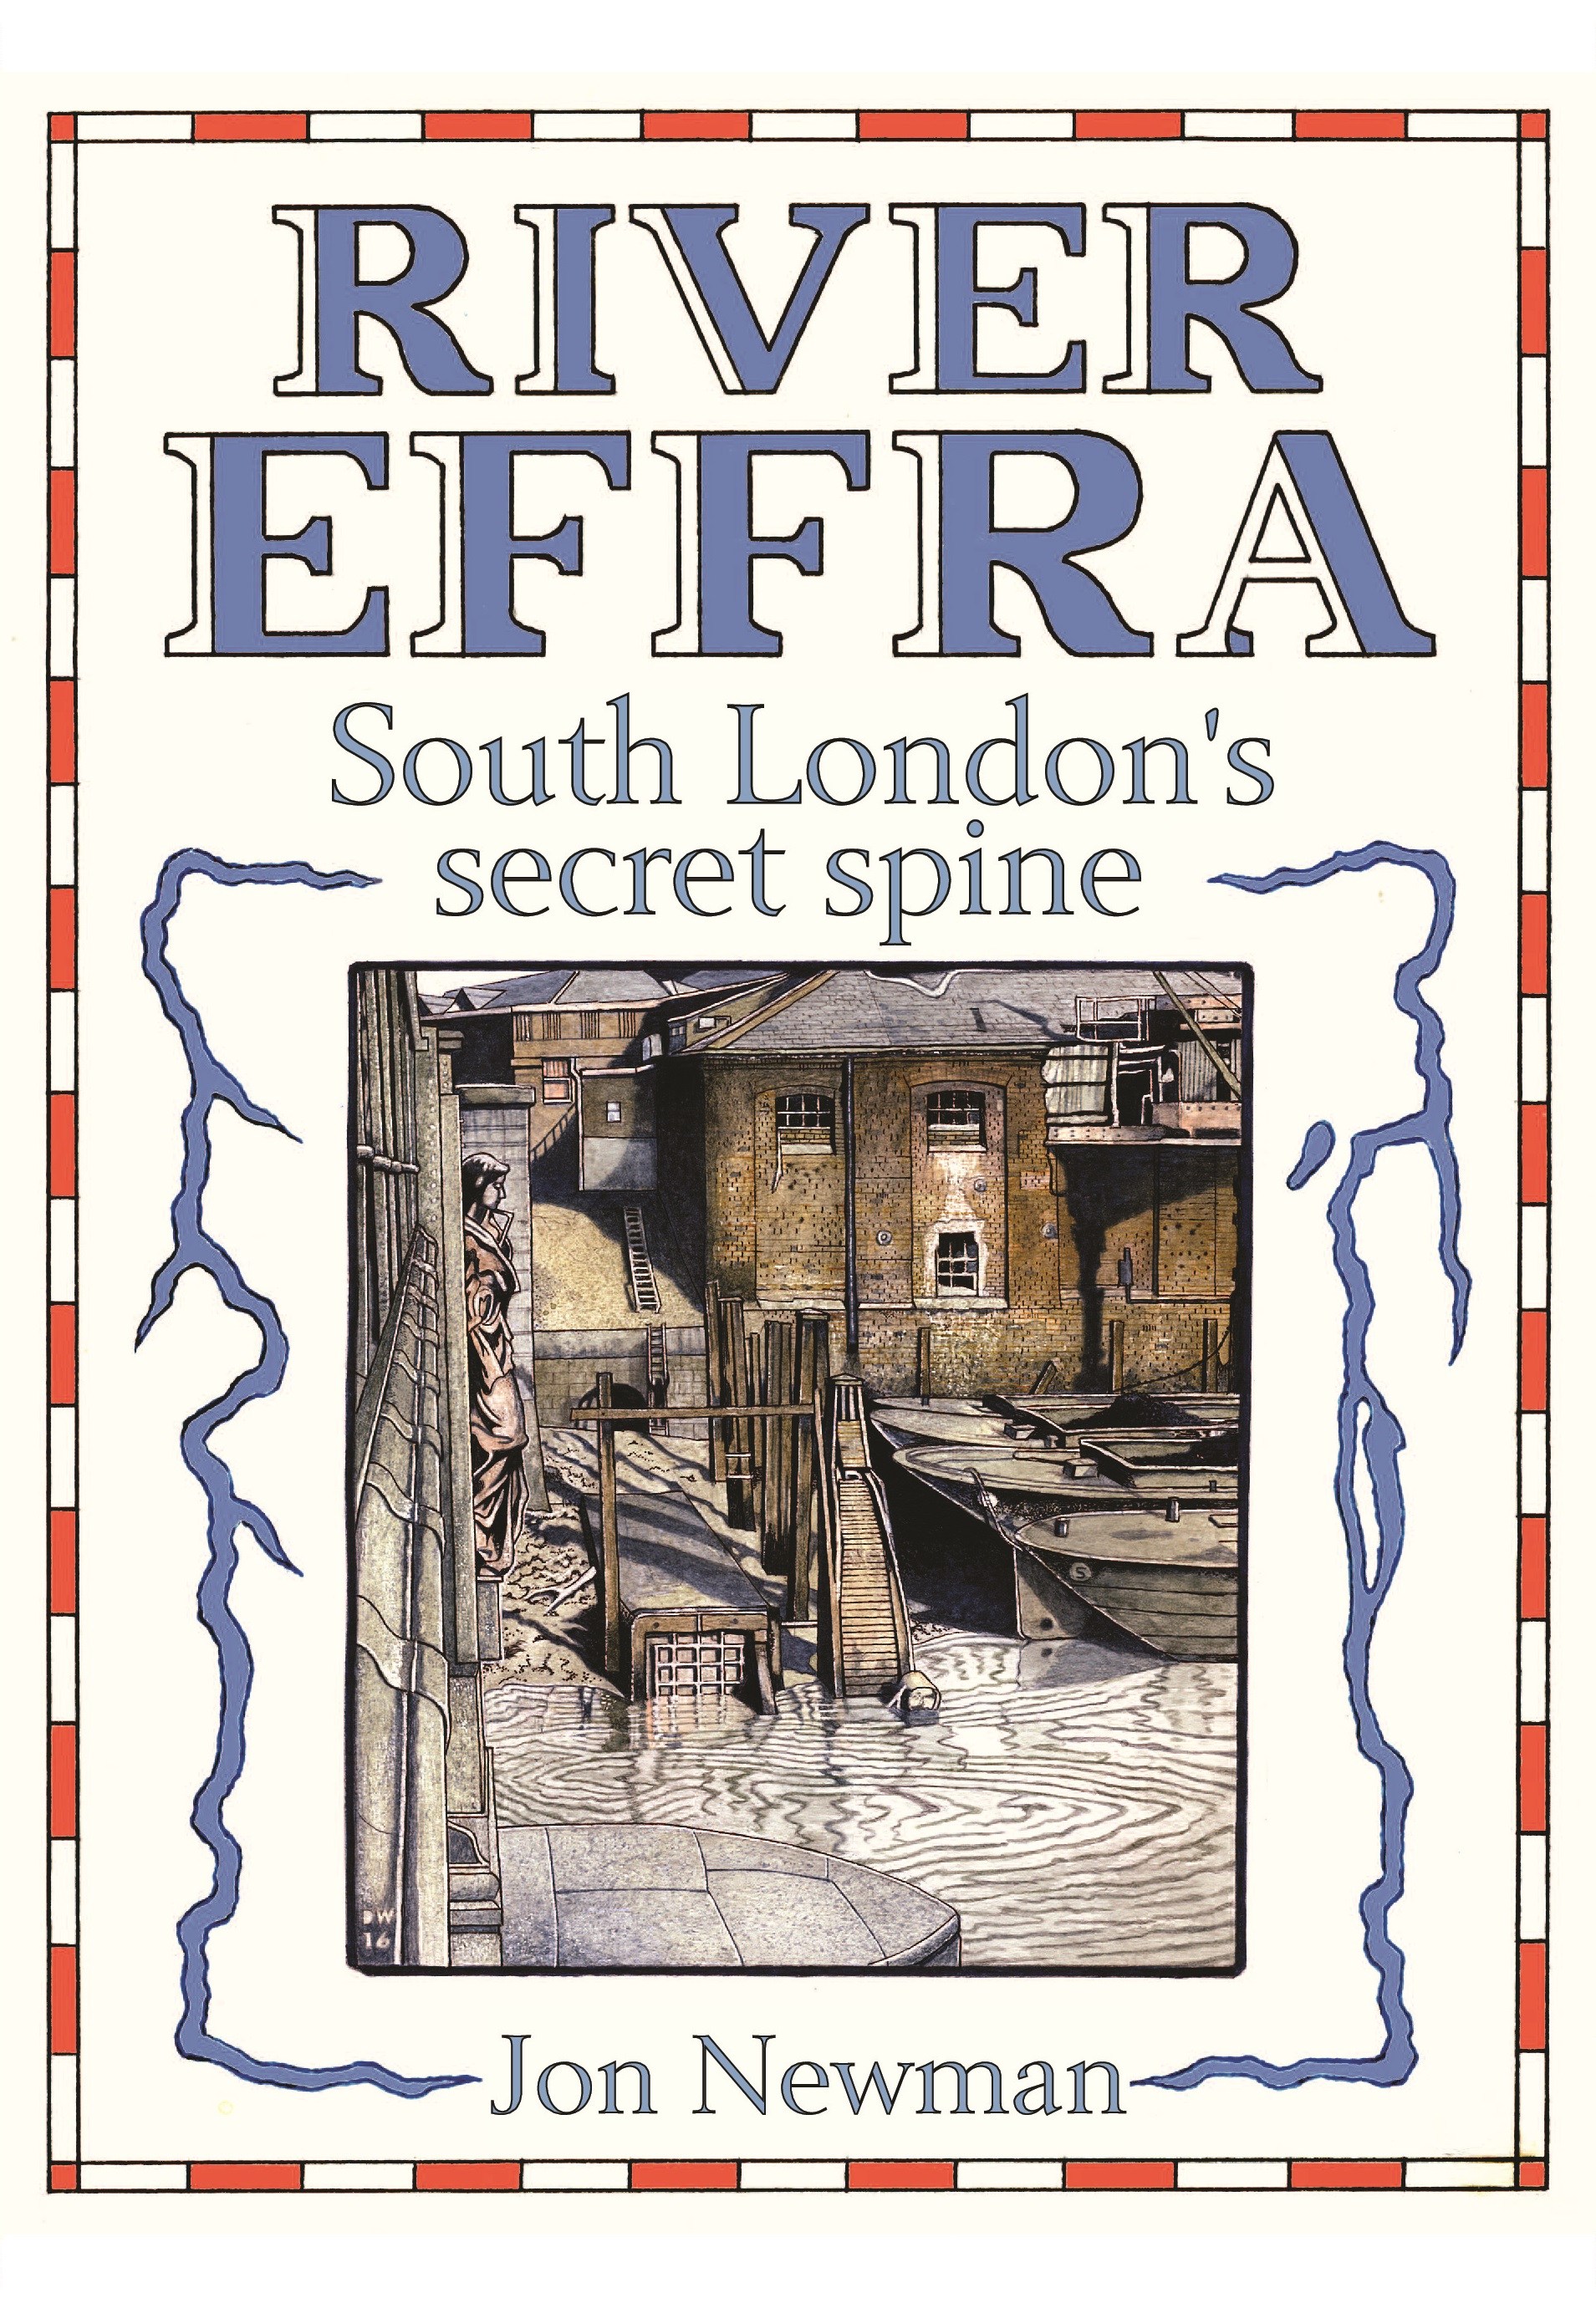 Not even Good Queen Bess could barge up Brixton Hill from Vauxhall for a date with Sir Walter Raleigh – River Effra: London's Secret Spine by Jon Newman